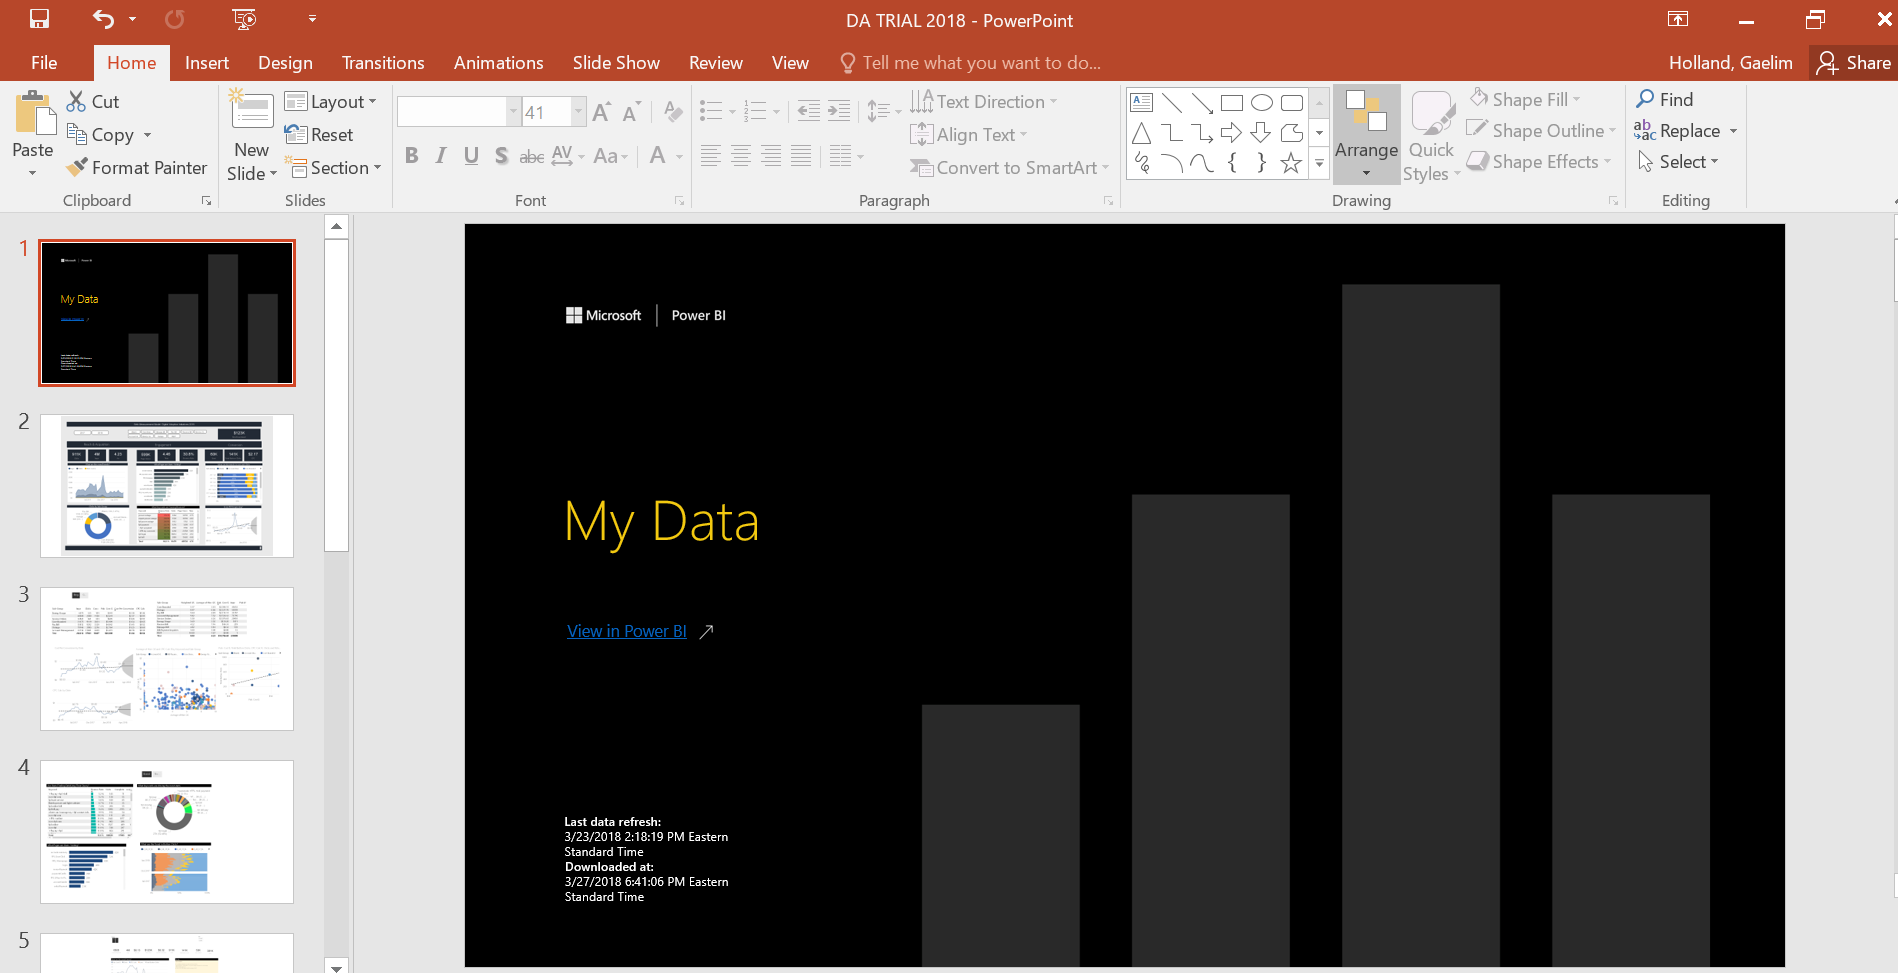 Learn How to Transform Power BI into Power Point Slides